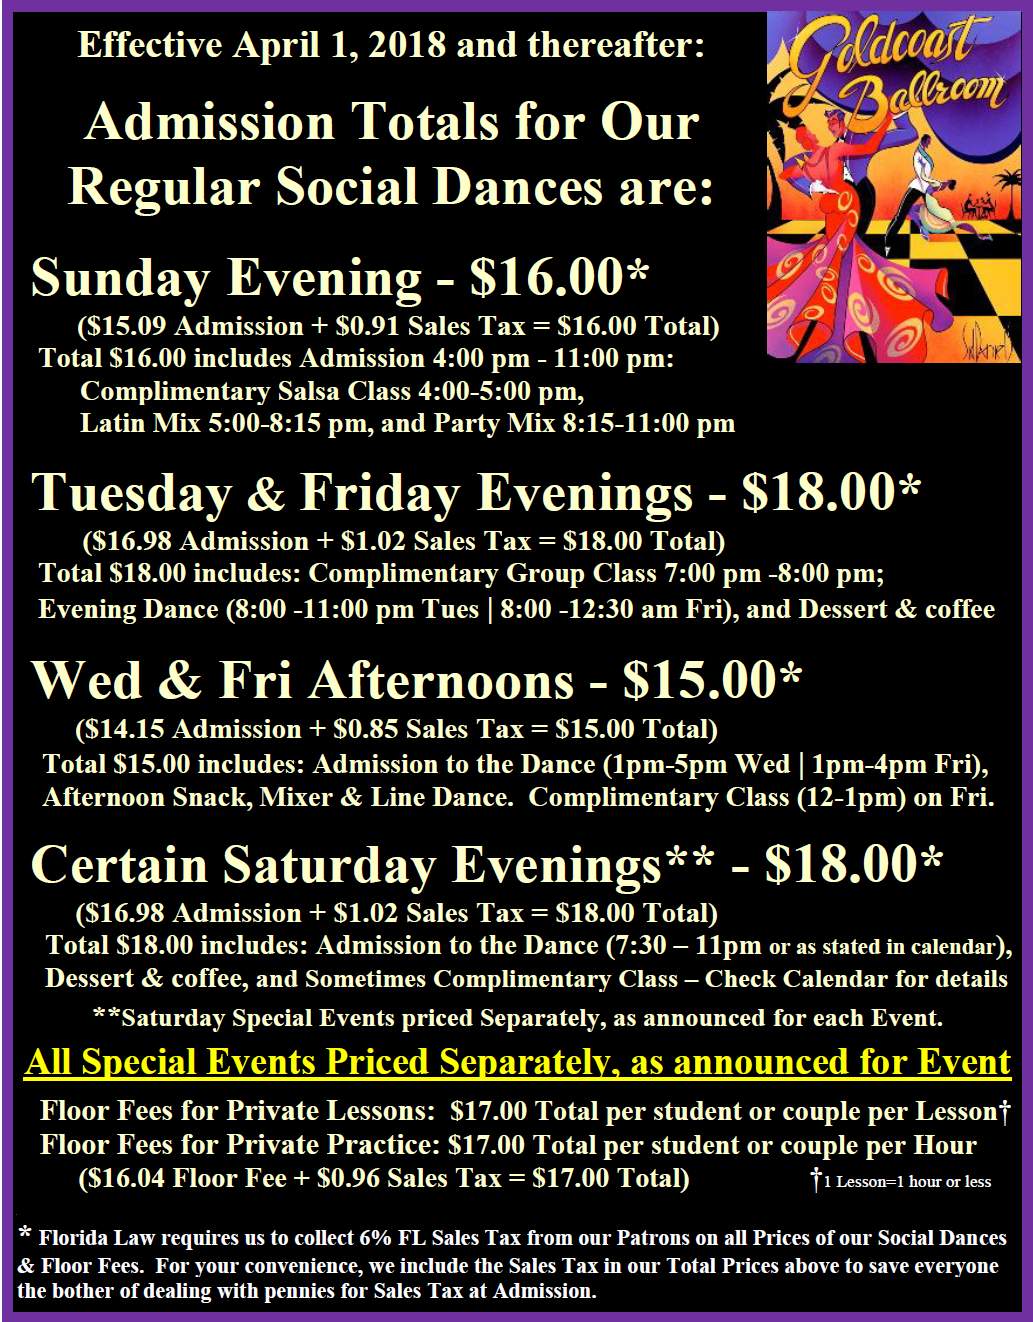 Prices for Regular Social Dances & Floor Fees, Effective April 1, 2018 & thereafter - Goldcoast Ballroom